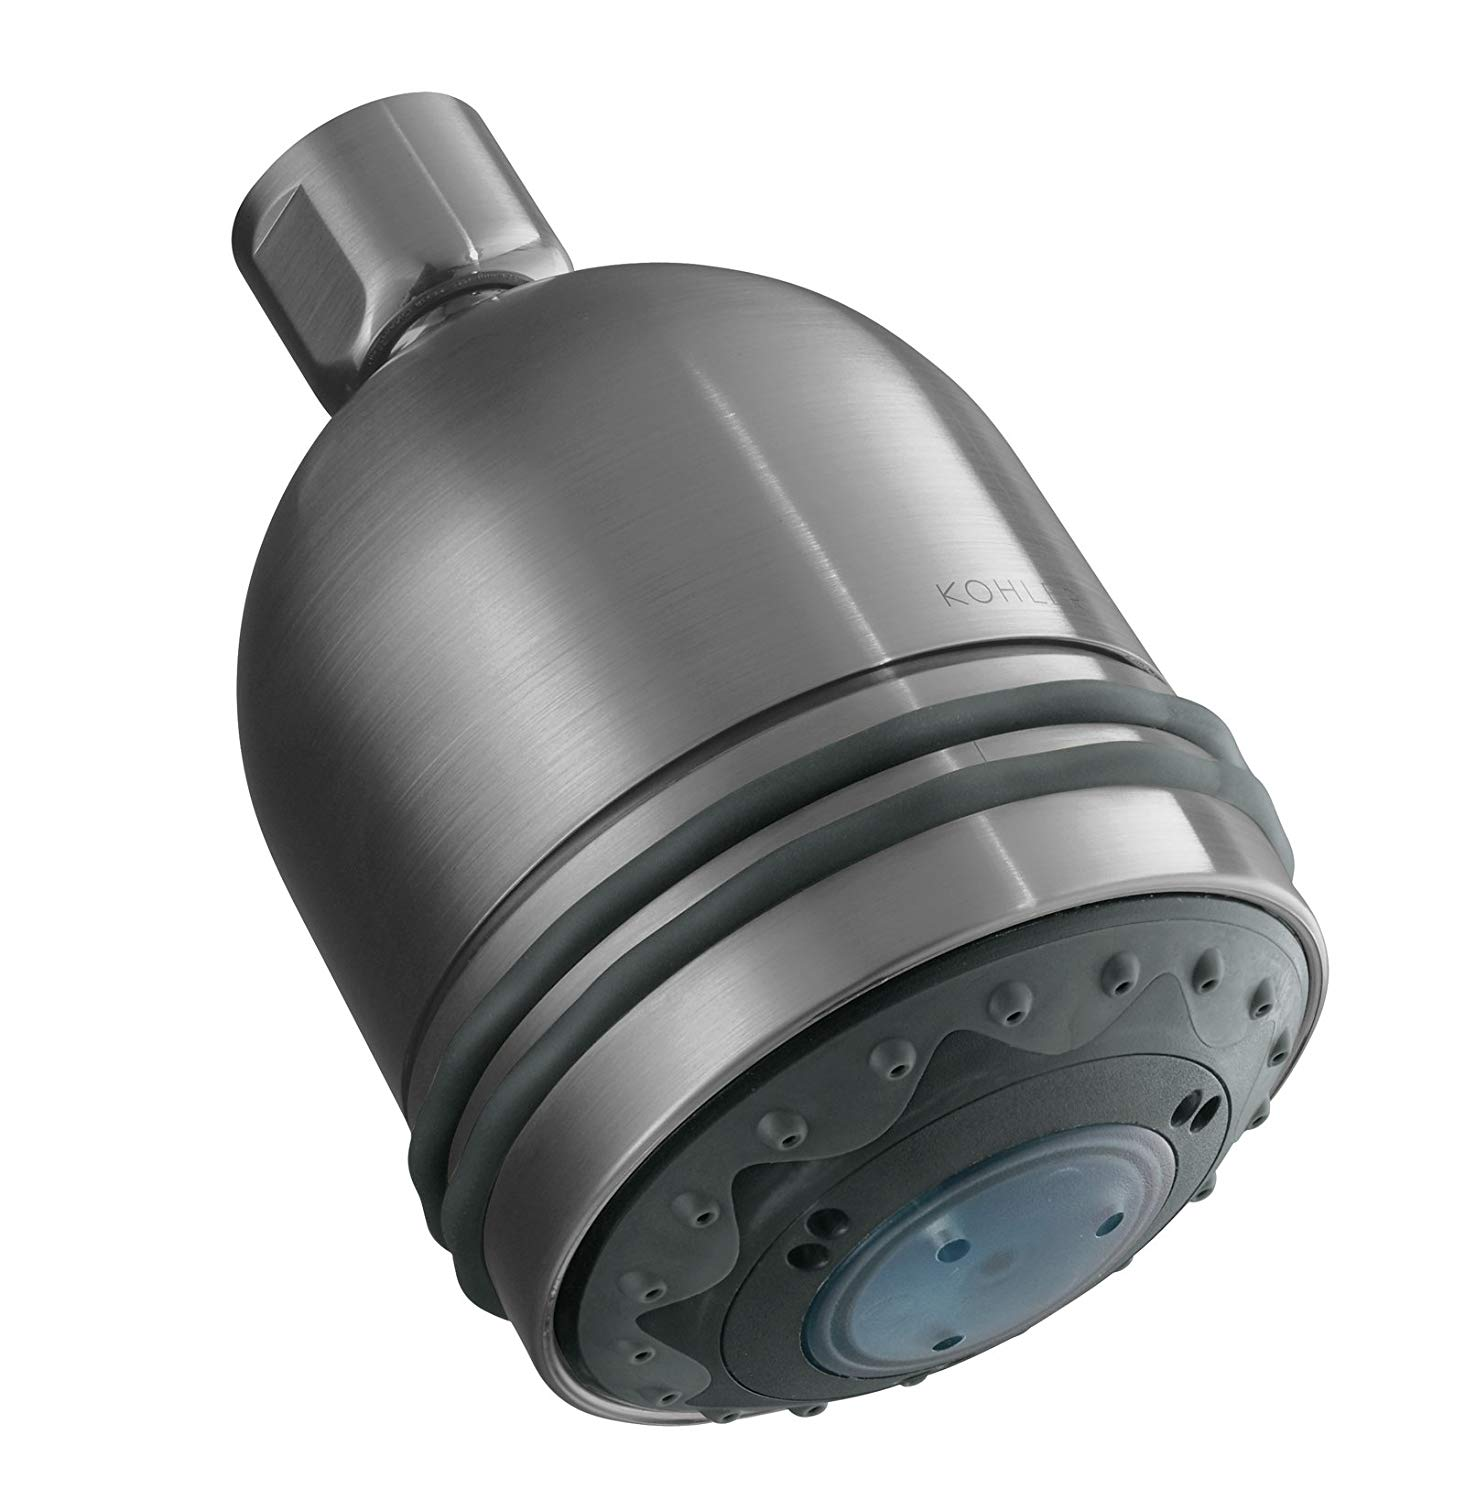 Cheap Kohler Showerhead Find Kohler Showerhead Deals On